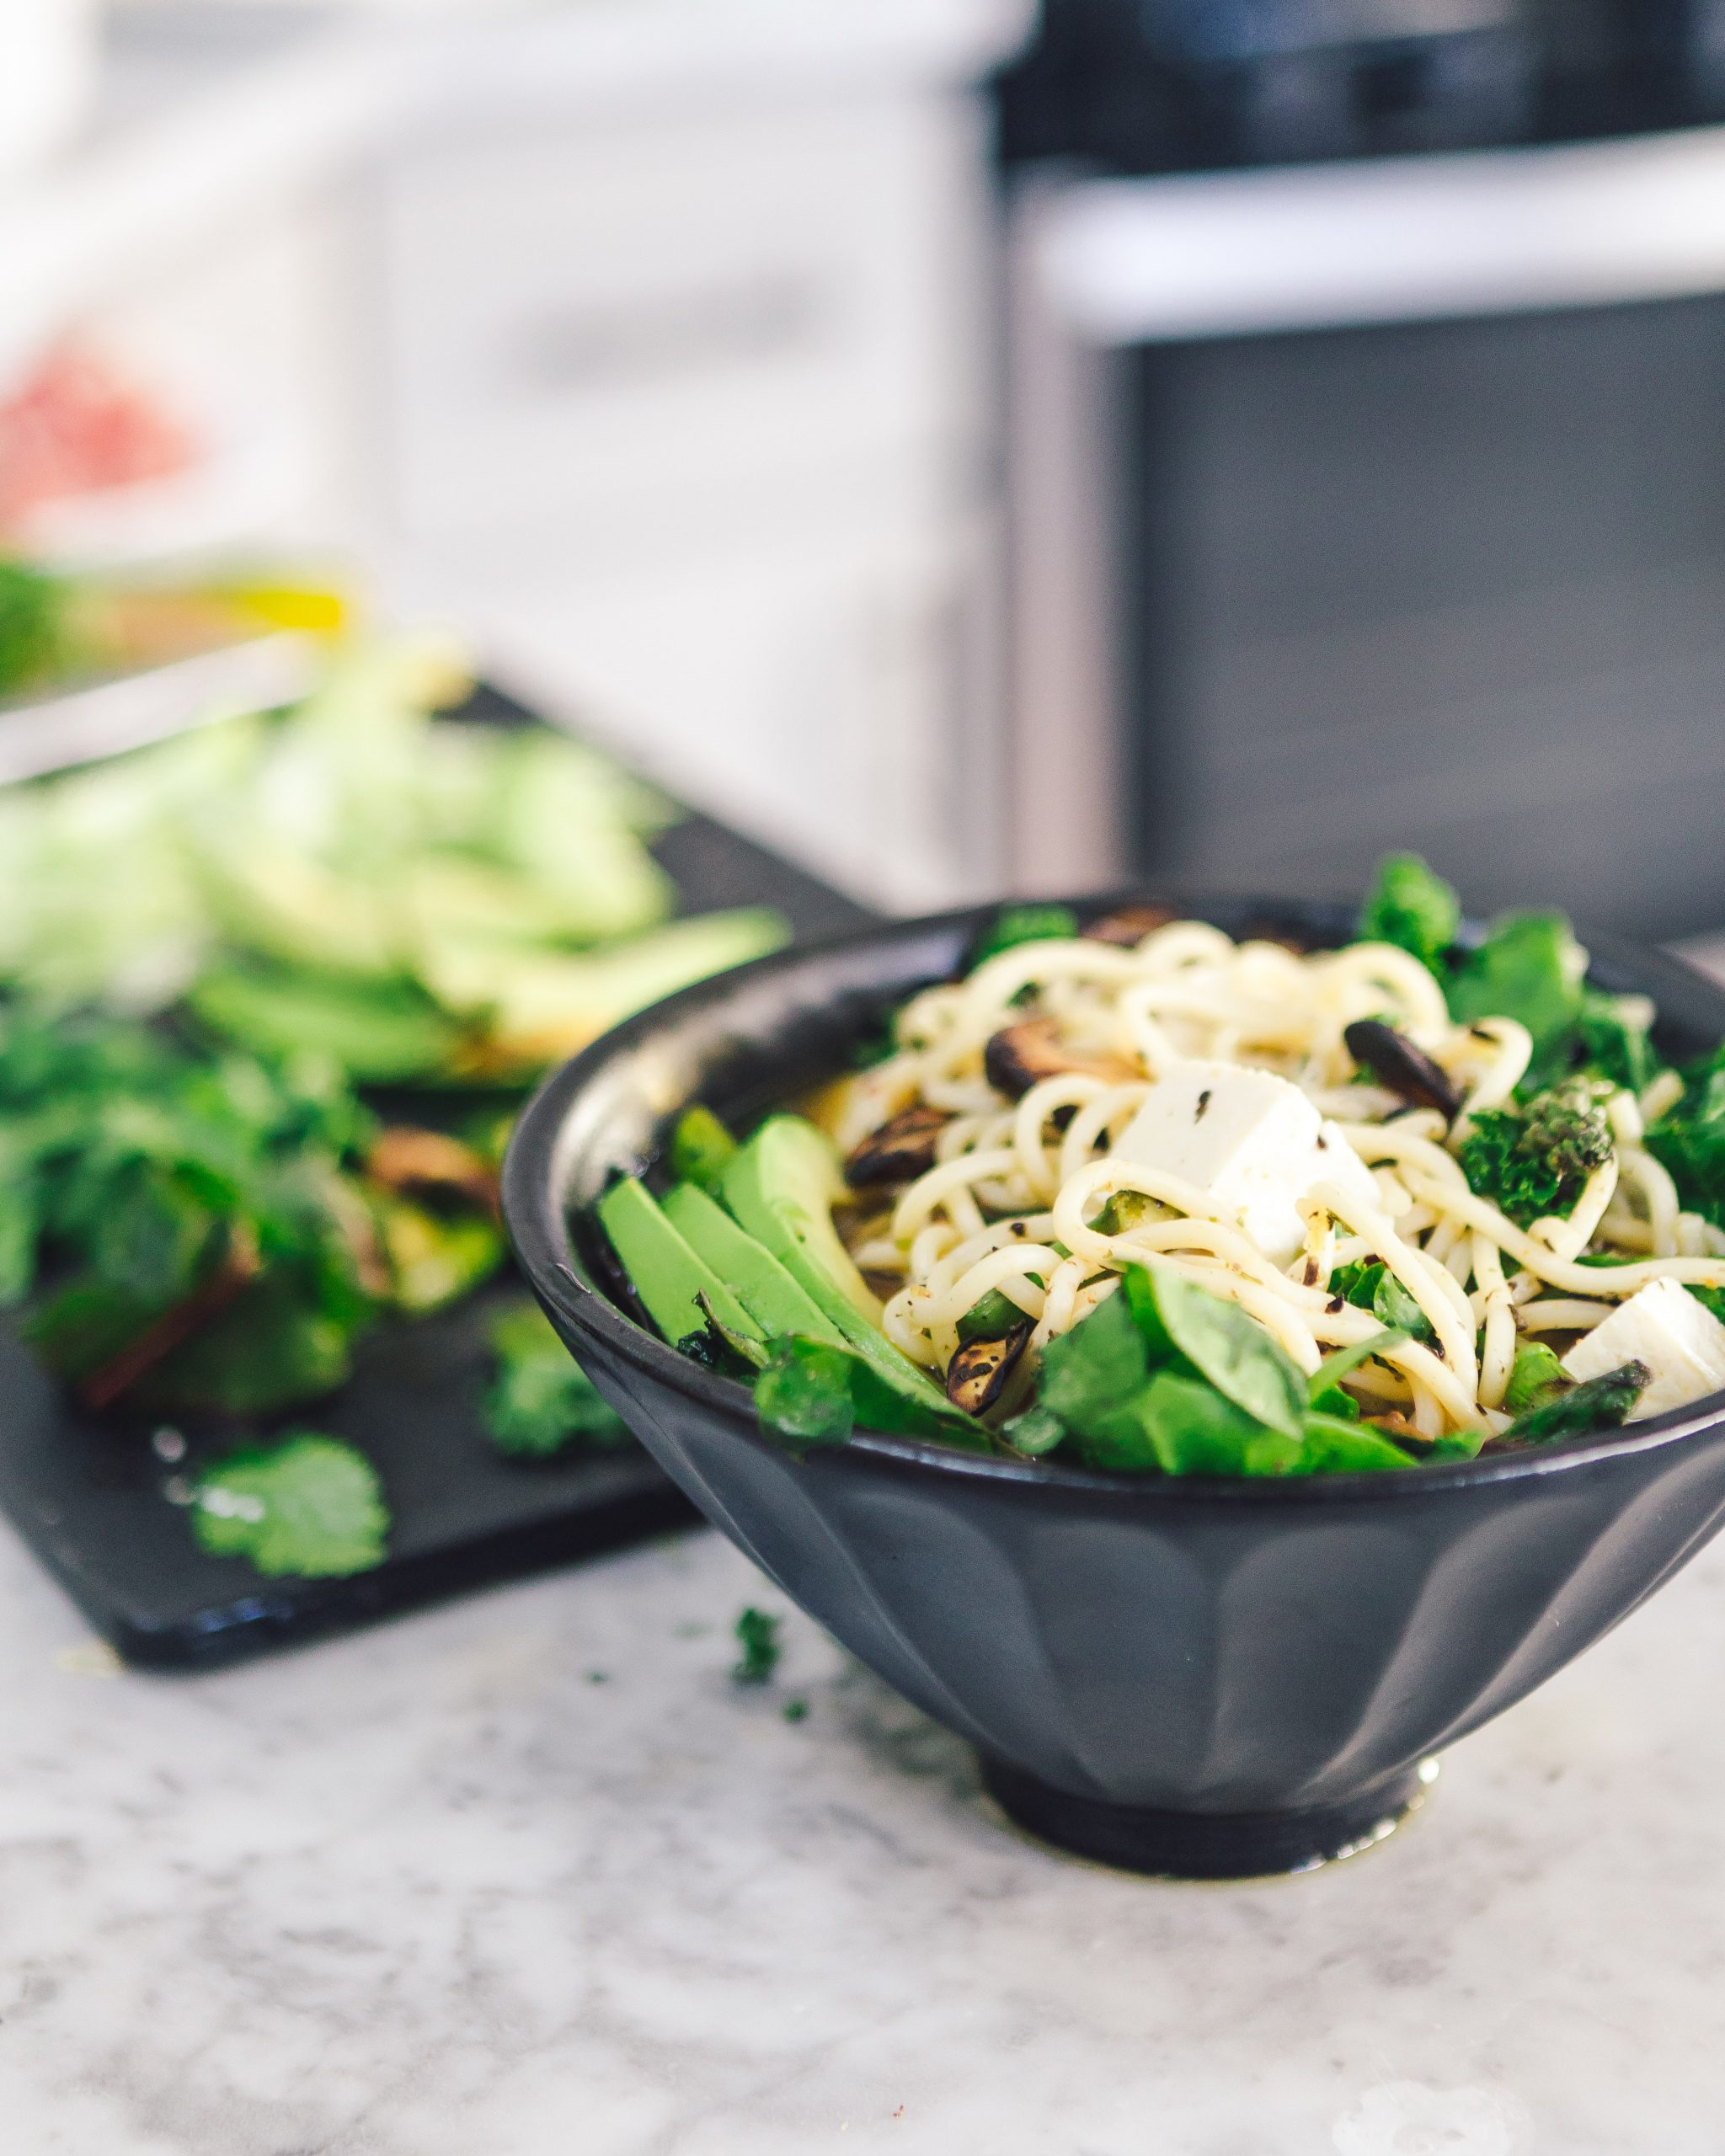 bowl of noodles with tofu and vegetables